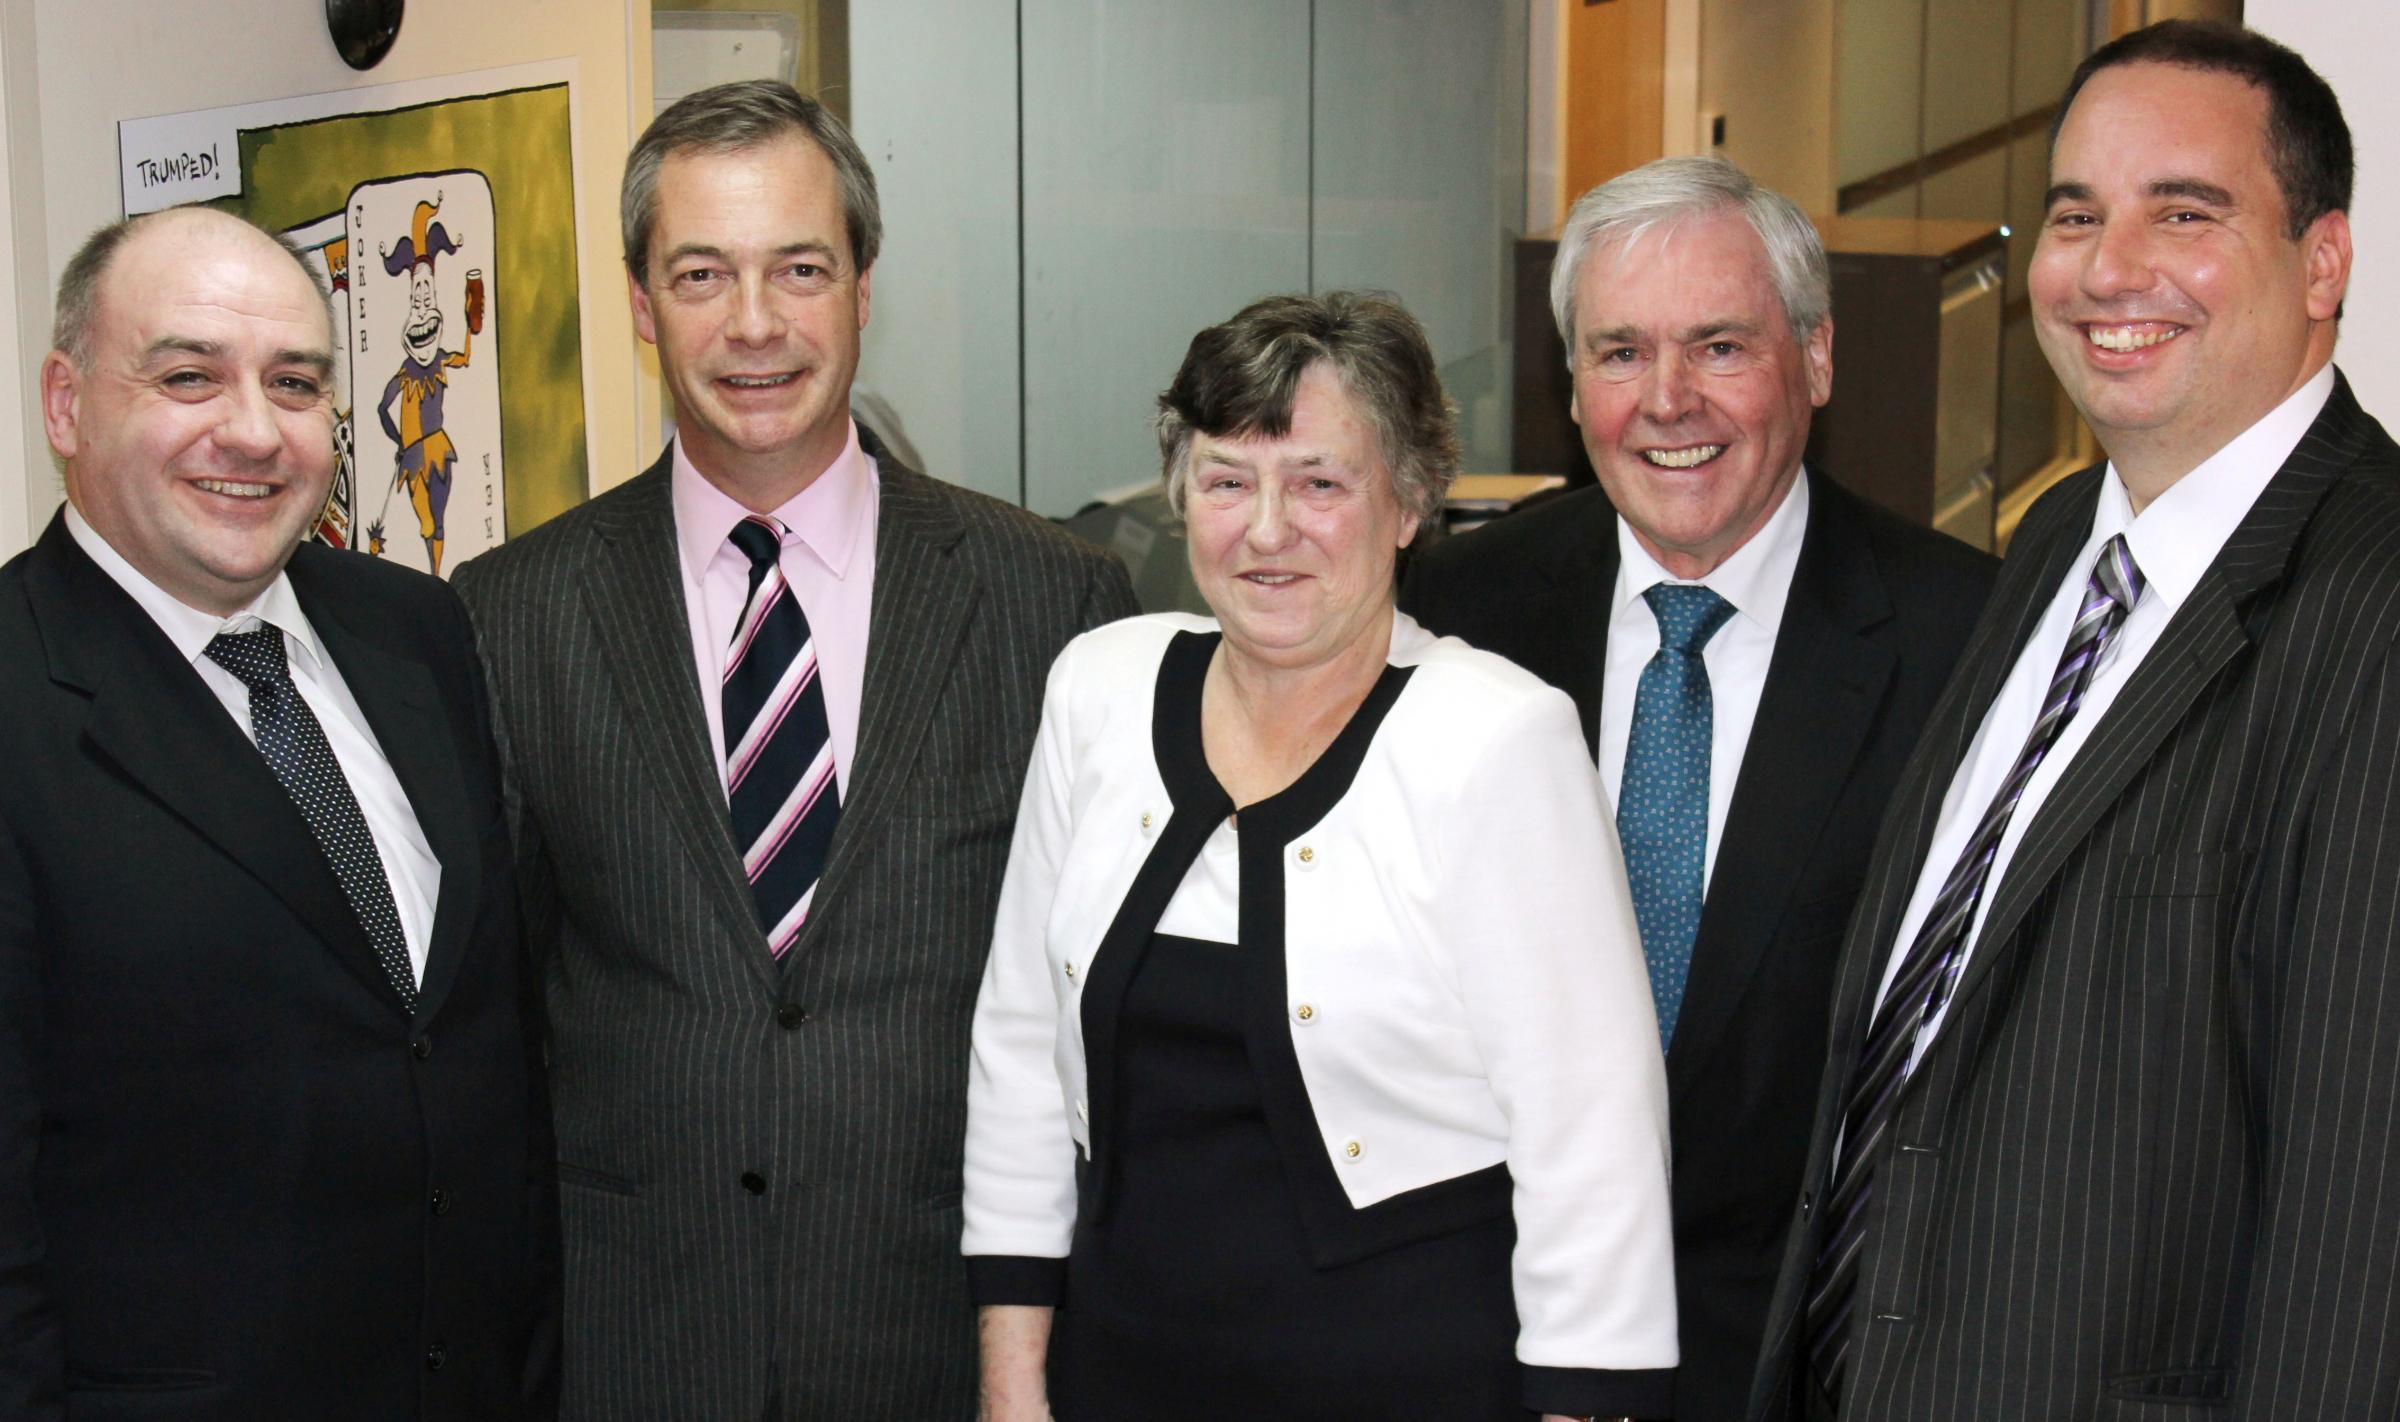 Adrian, Hazel and Ken Turner with Nigel Farage, second left, and Bill Etheridge, right.